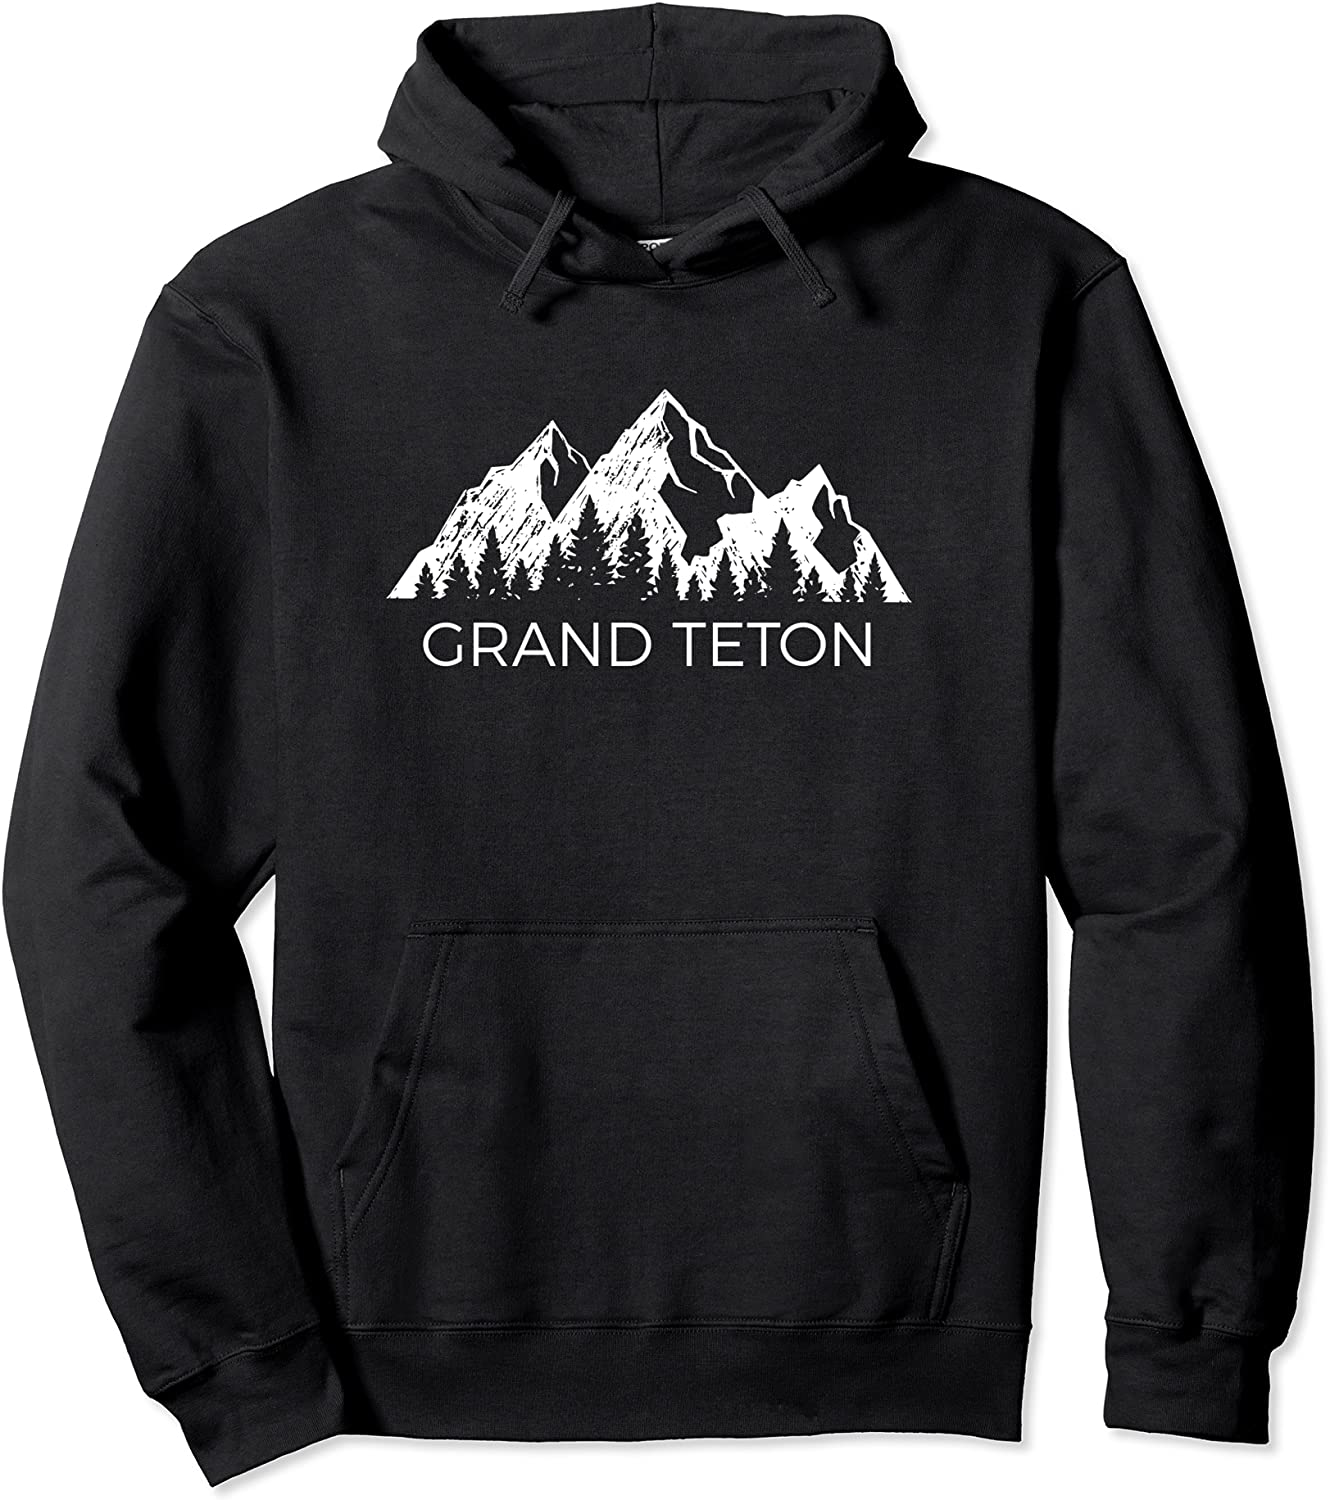 Grand Teton Hoodie 2021 model Men All items in the store Women Mountain Cool Pullove